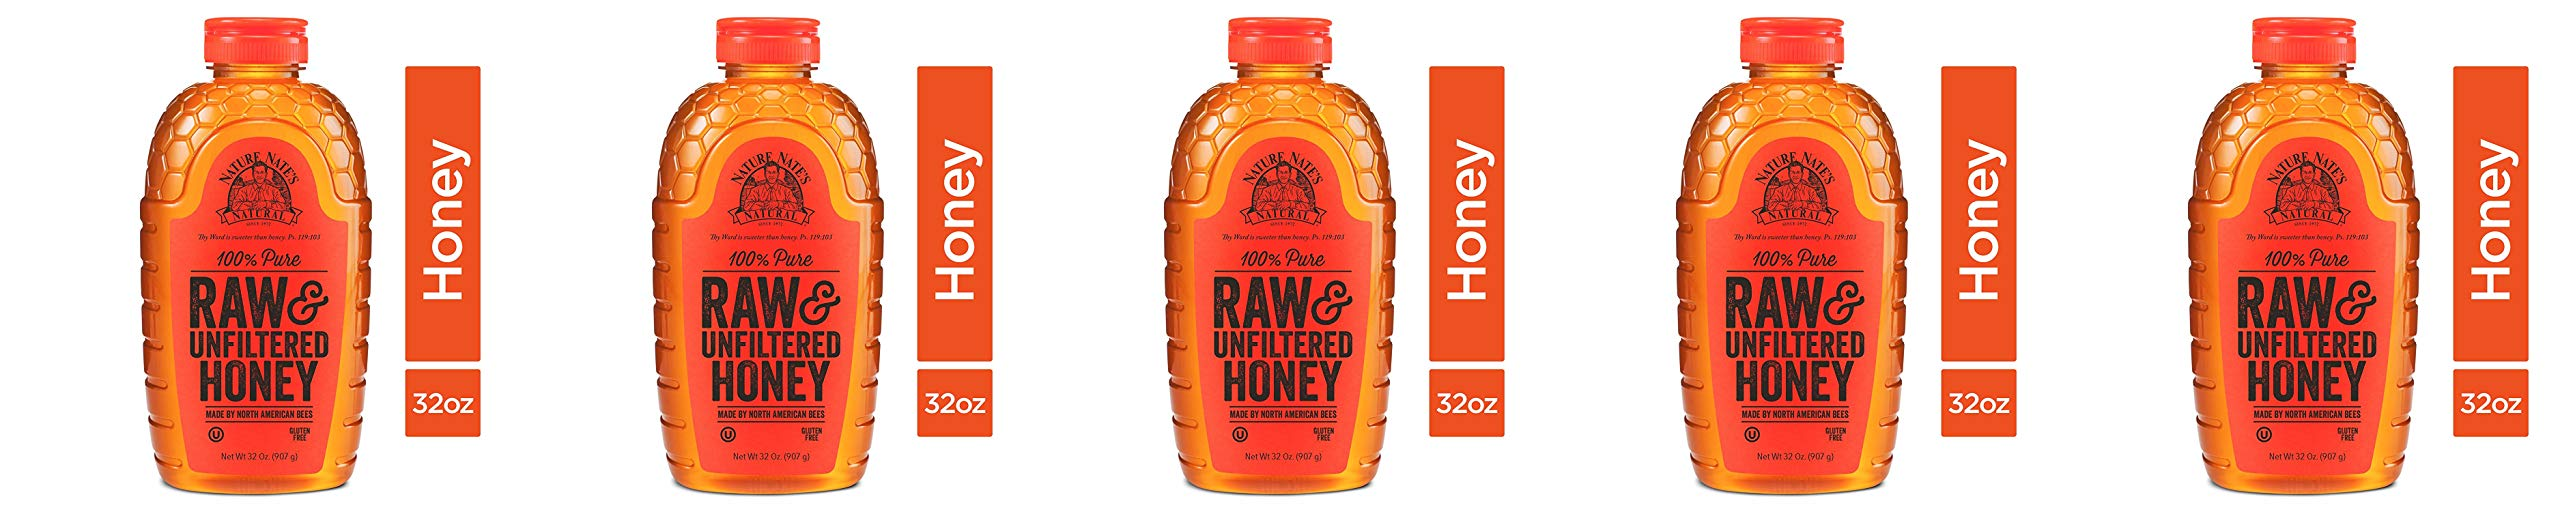 Nature Nate's 100% Pure Raw & Unfiltered Honey; 32-oz. Certified; Enjoy Honey's Balanced Flavors, Wholesome Benefits and Sweet Natural Goodness, 5 Pack by Nature Nate's (Image #1)